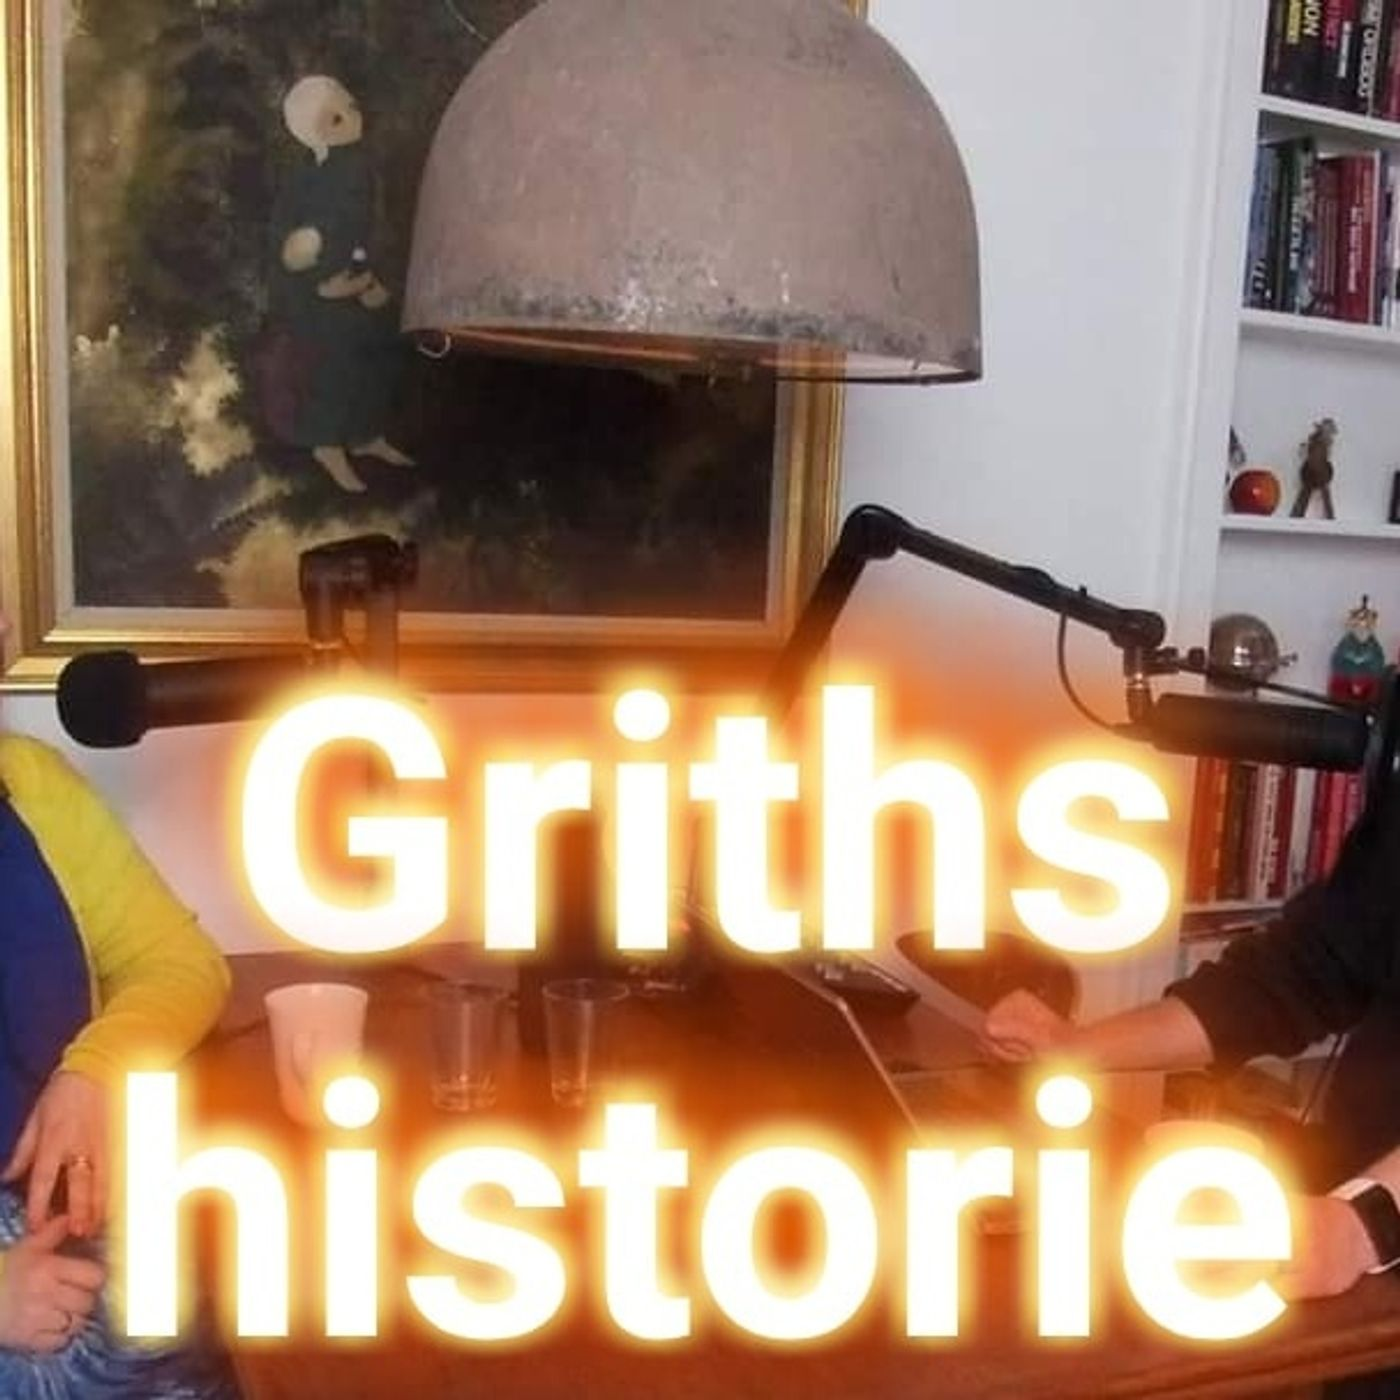 #46 Griths historie.